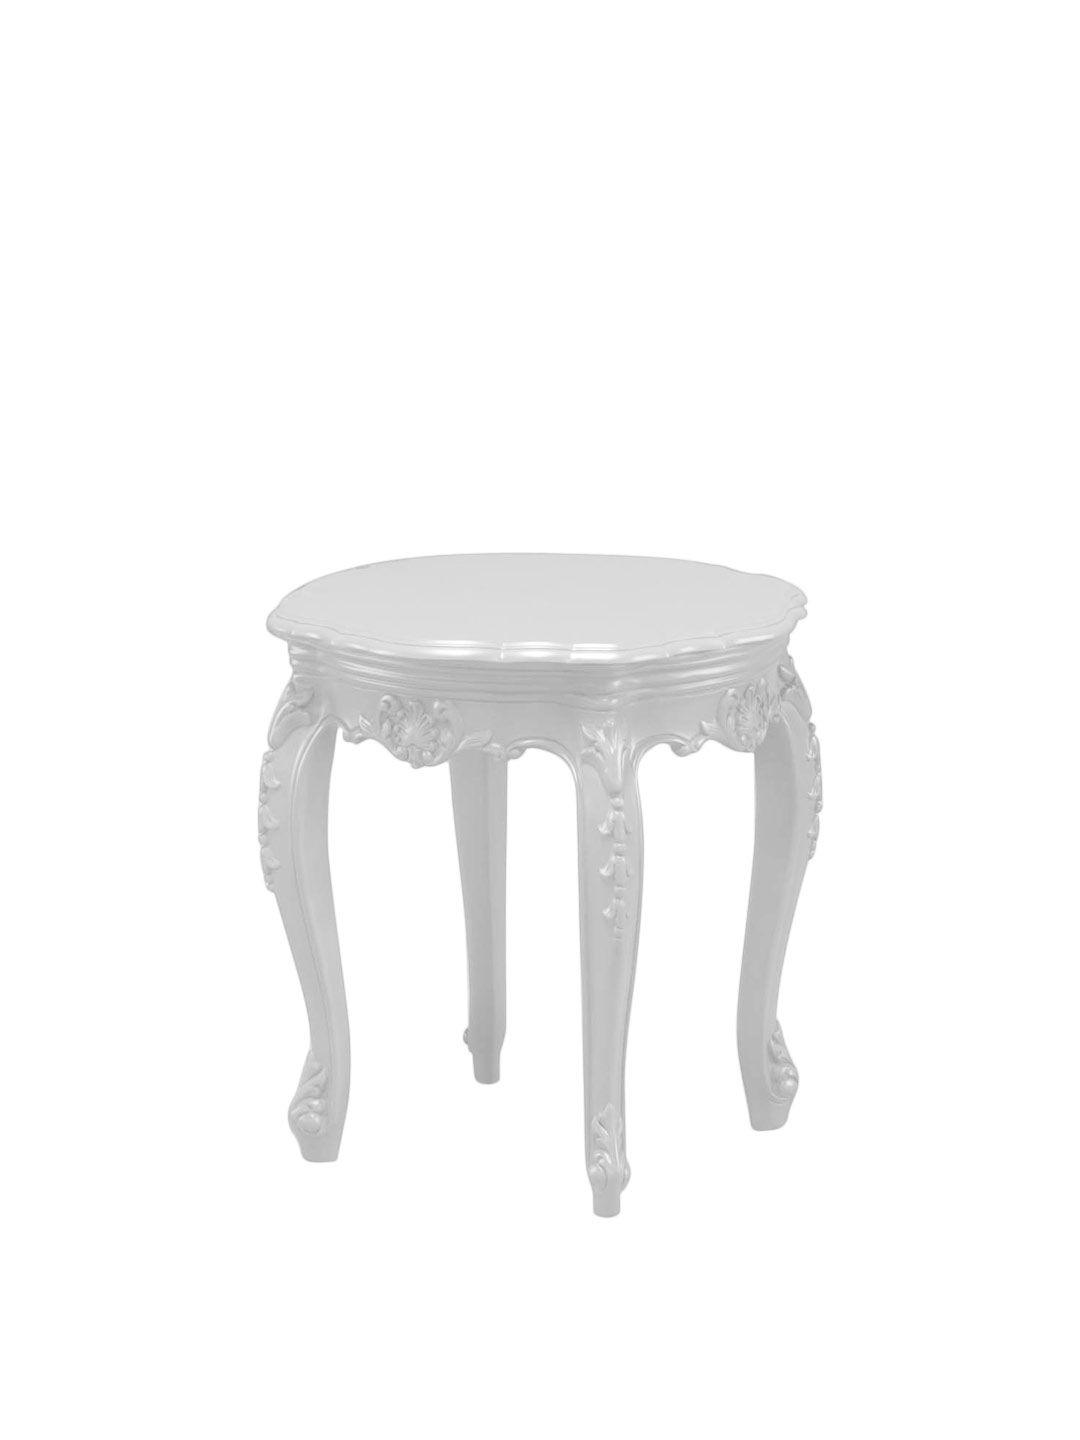 white outdoor side table products and accent polart kitchen pulls ikea tables living room pond lily lamp worlds away round square tablecloth small glass corner bass drum pedal